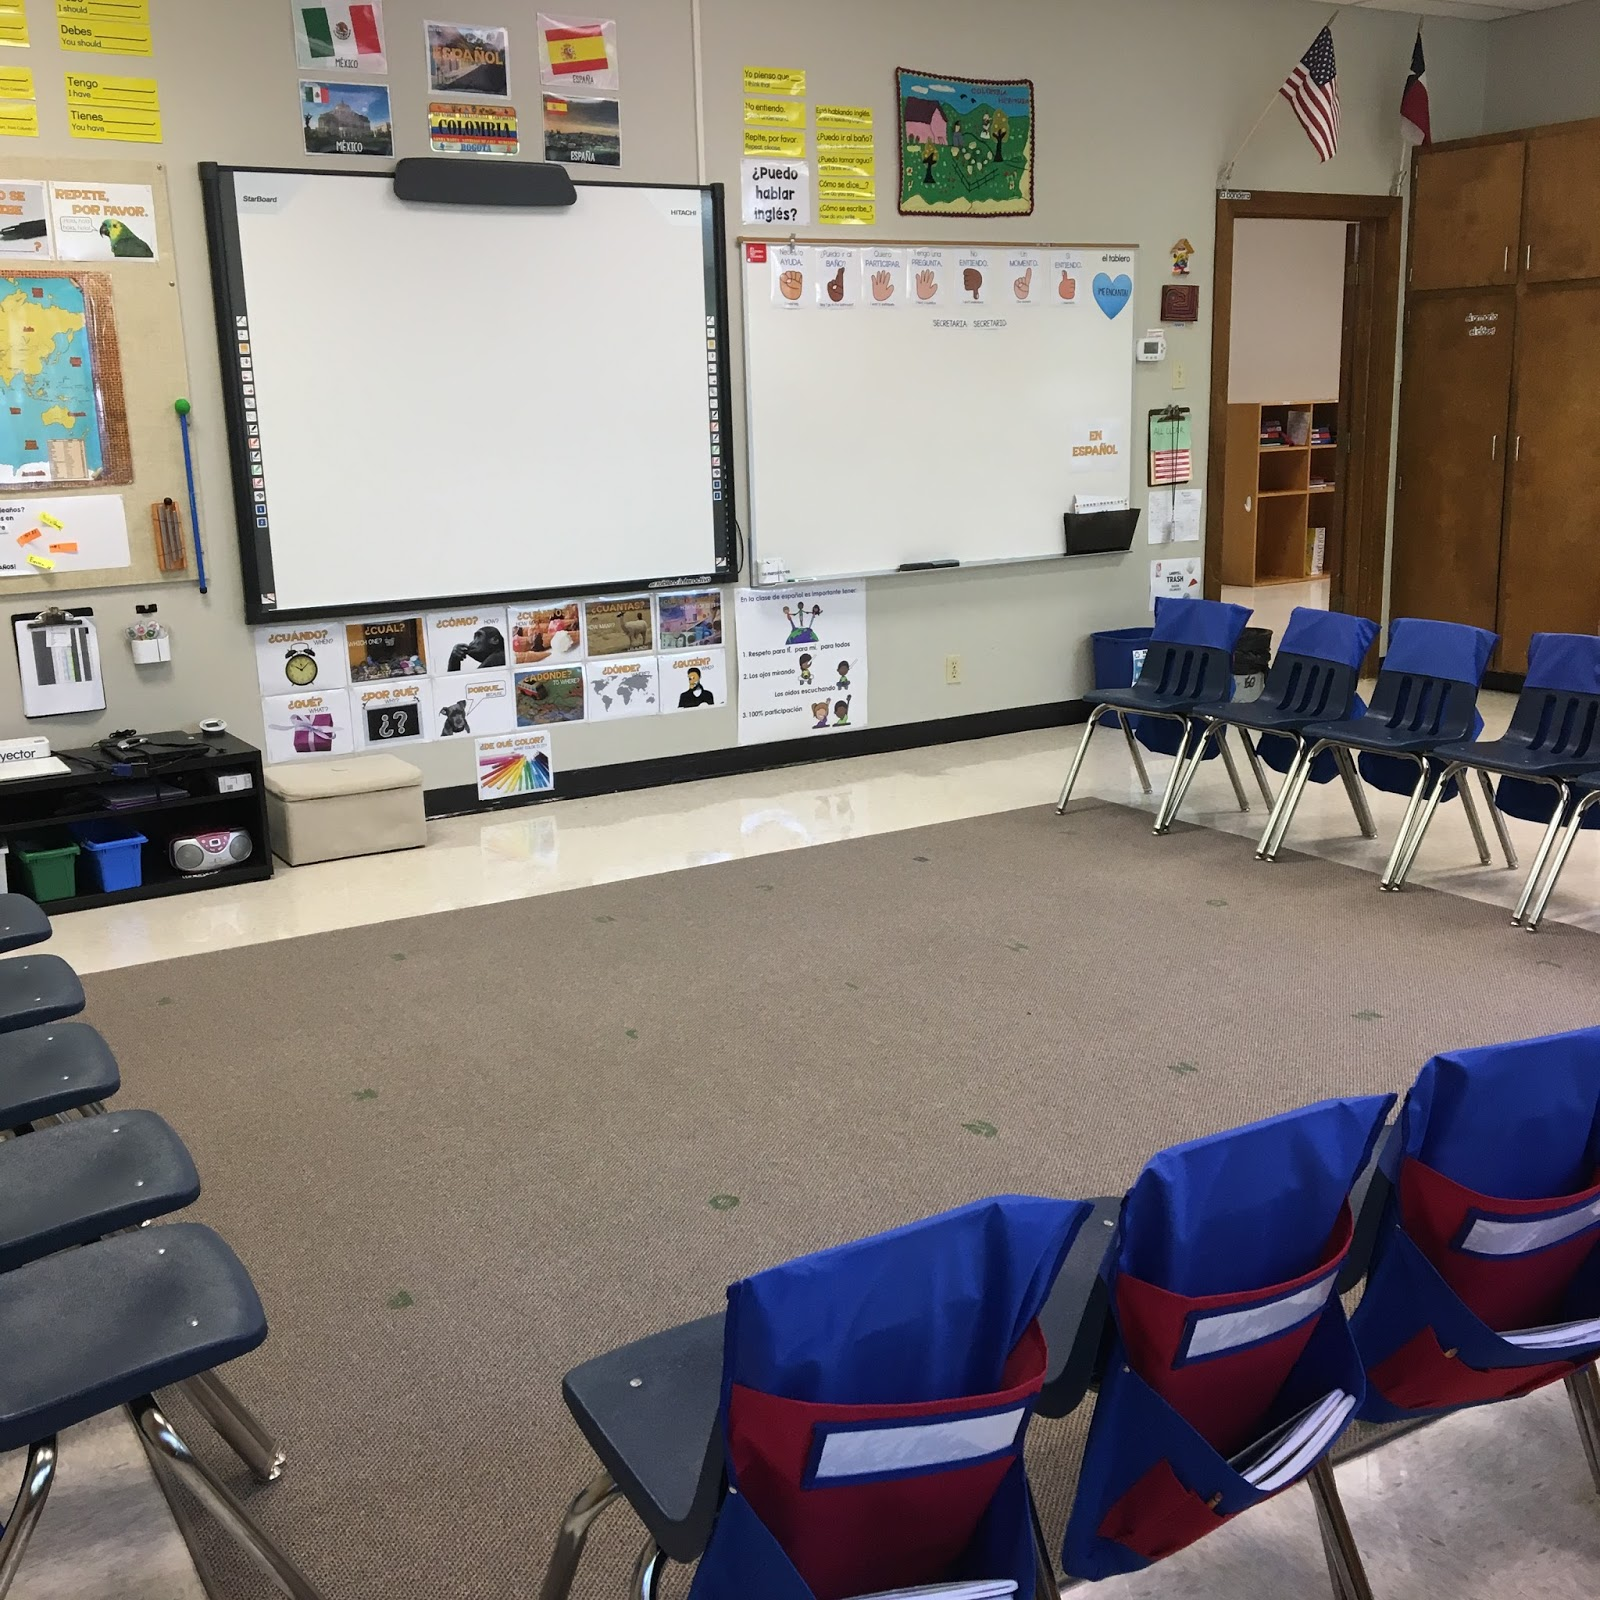 rugs group rug after for classroom google furniture up results only my shop img turned search music a